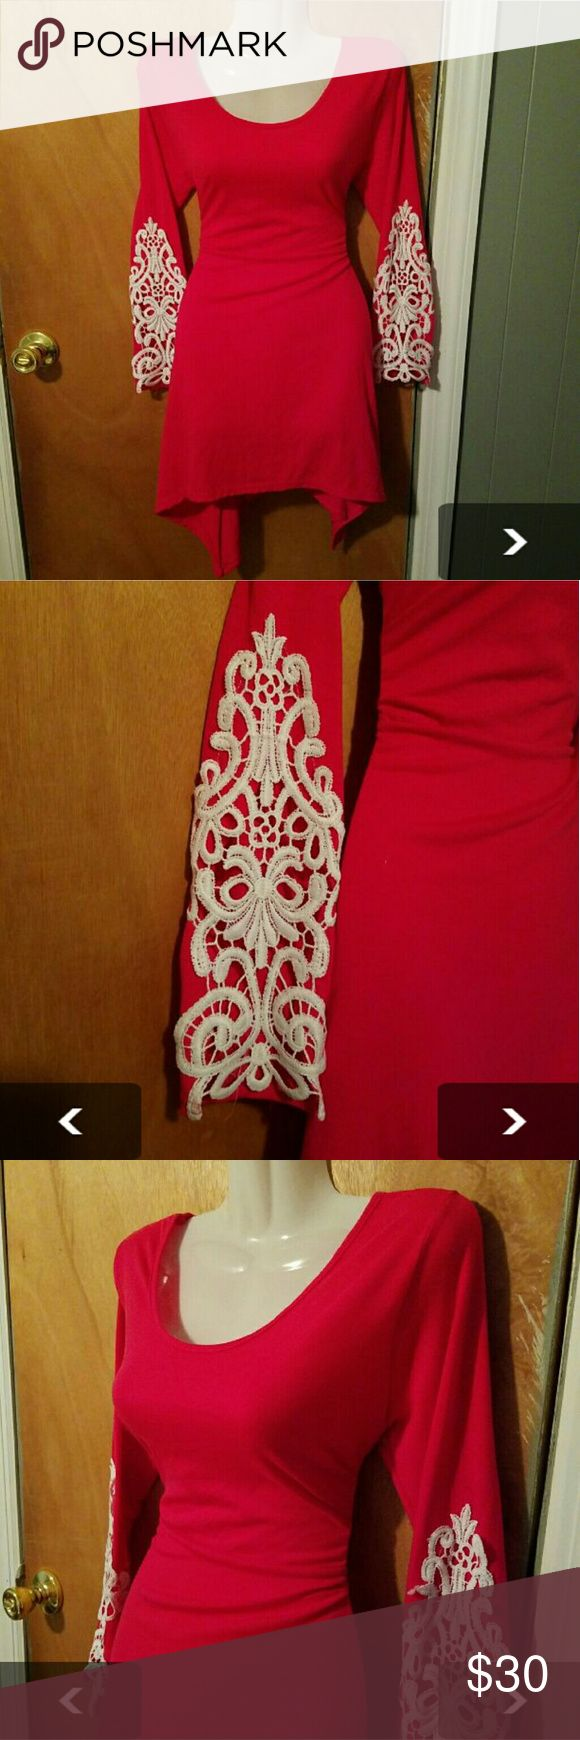 Hot Pink Dress with Crochet Sleeves Dress is not coral as shown on model. Dress is hot pink dress with white crochet sleeves. Price firm. Dresses Mini